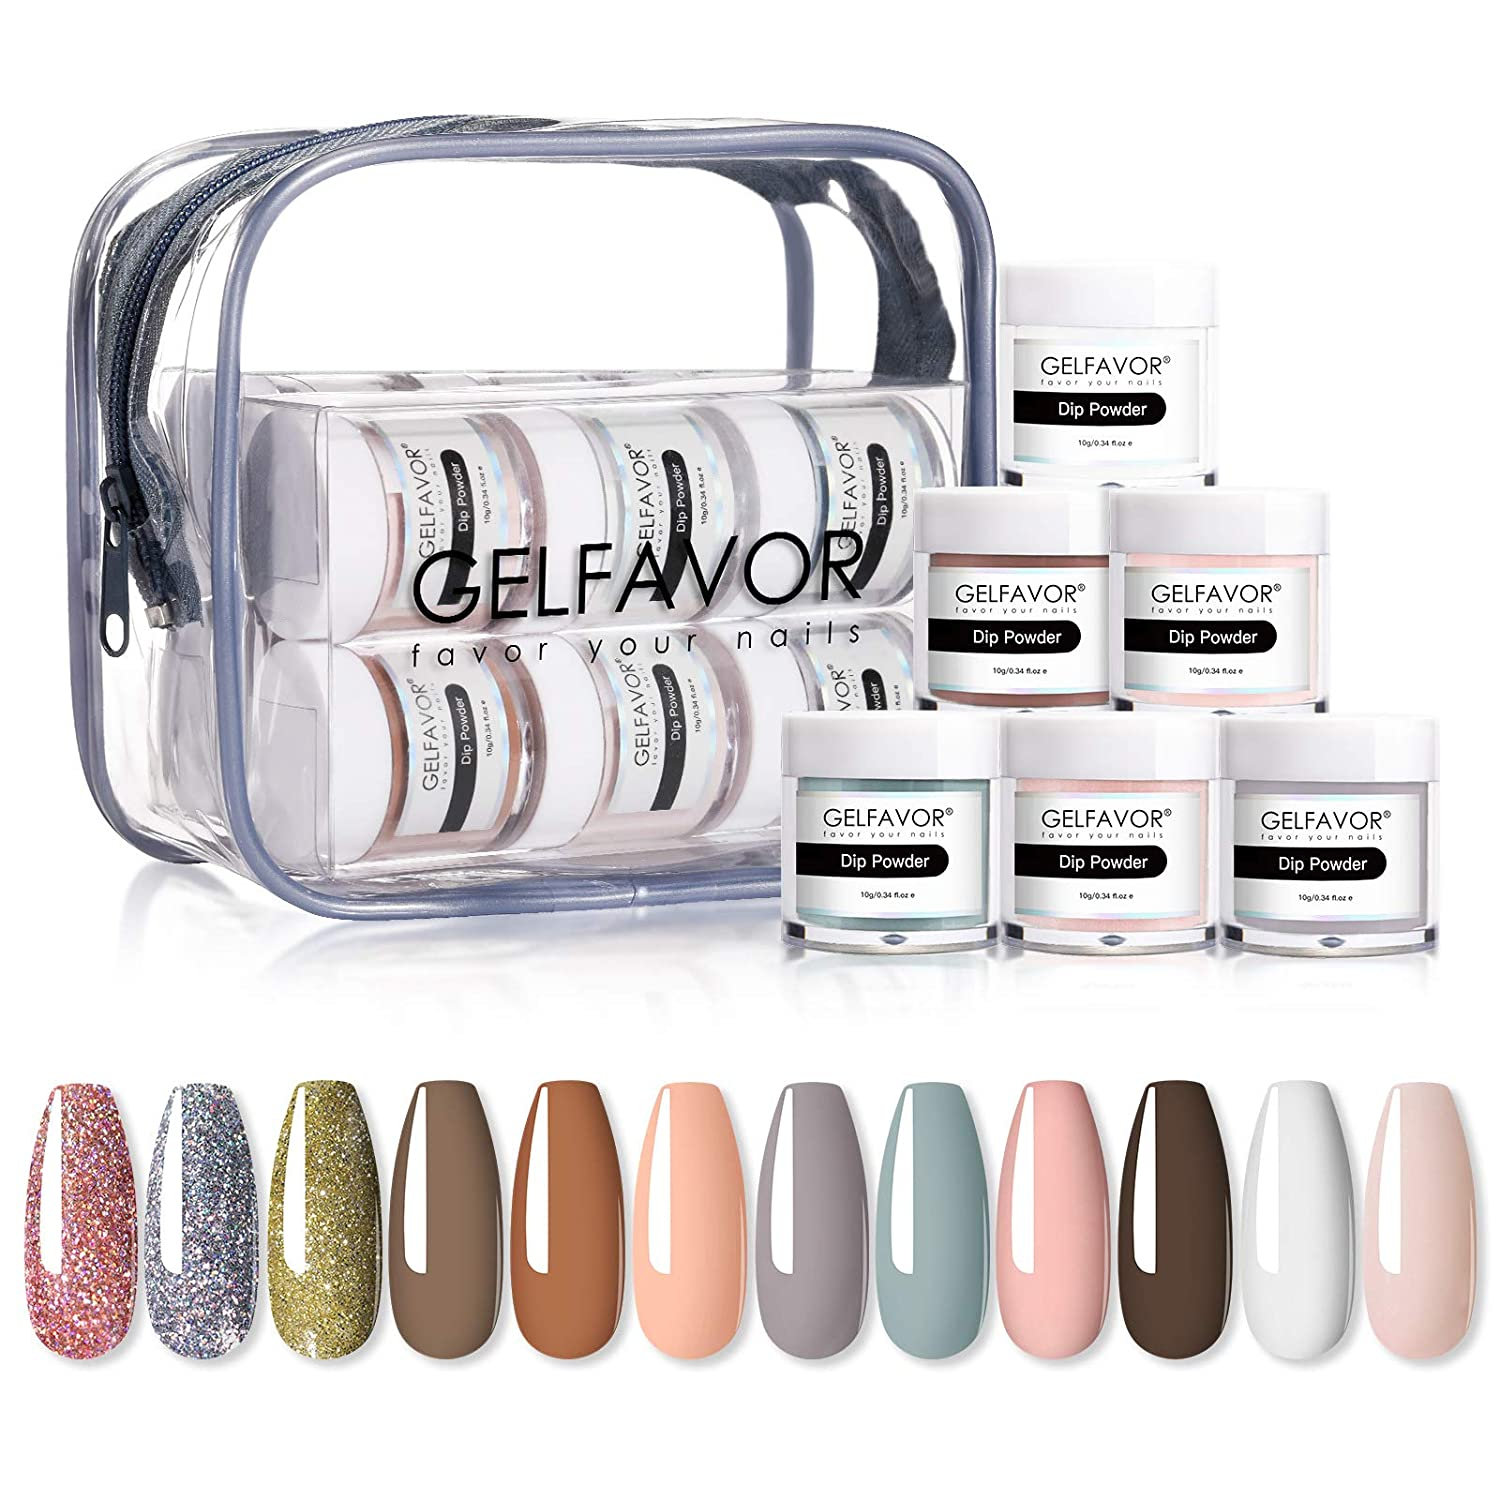 GELFAVOR Acrylic Nail Polish Powder Dip Set – Nude